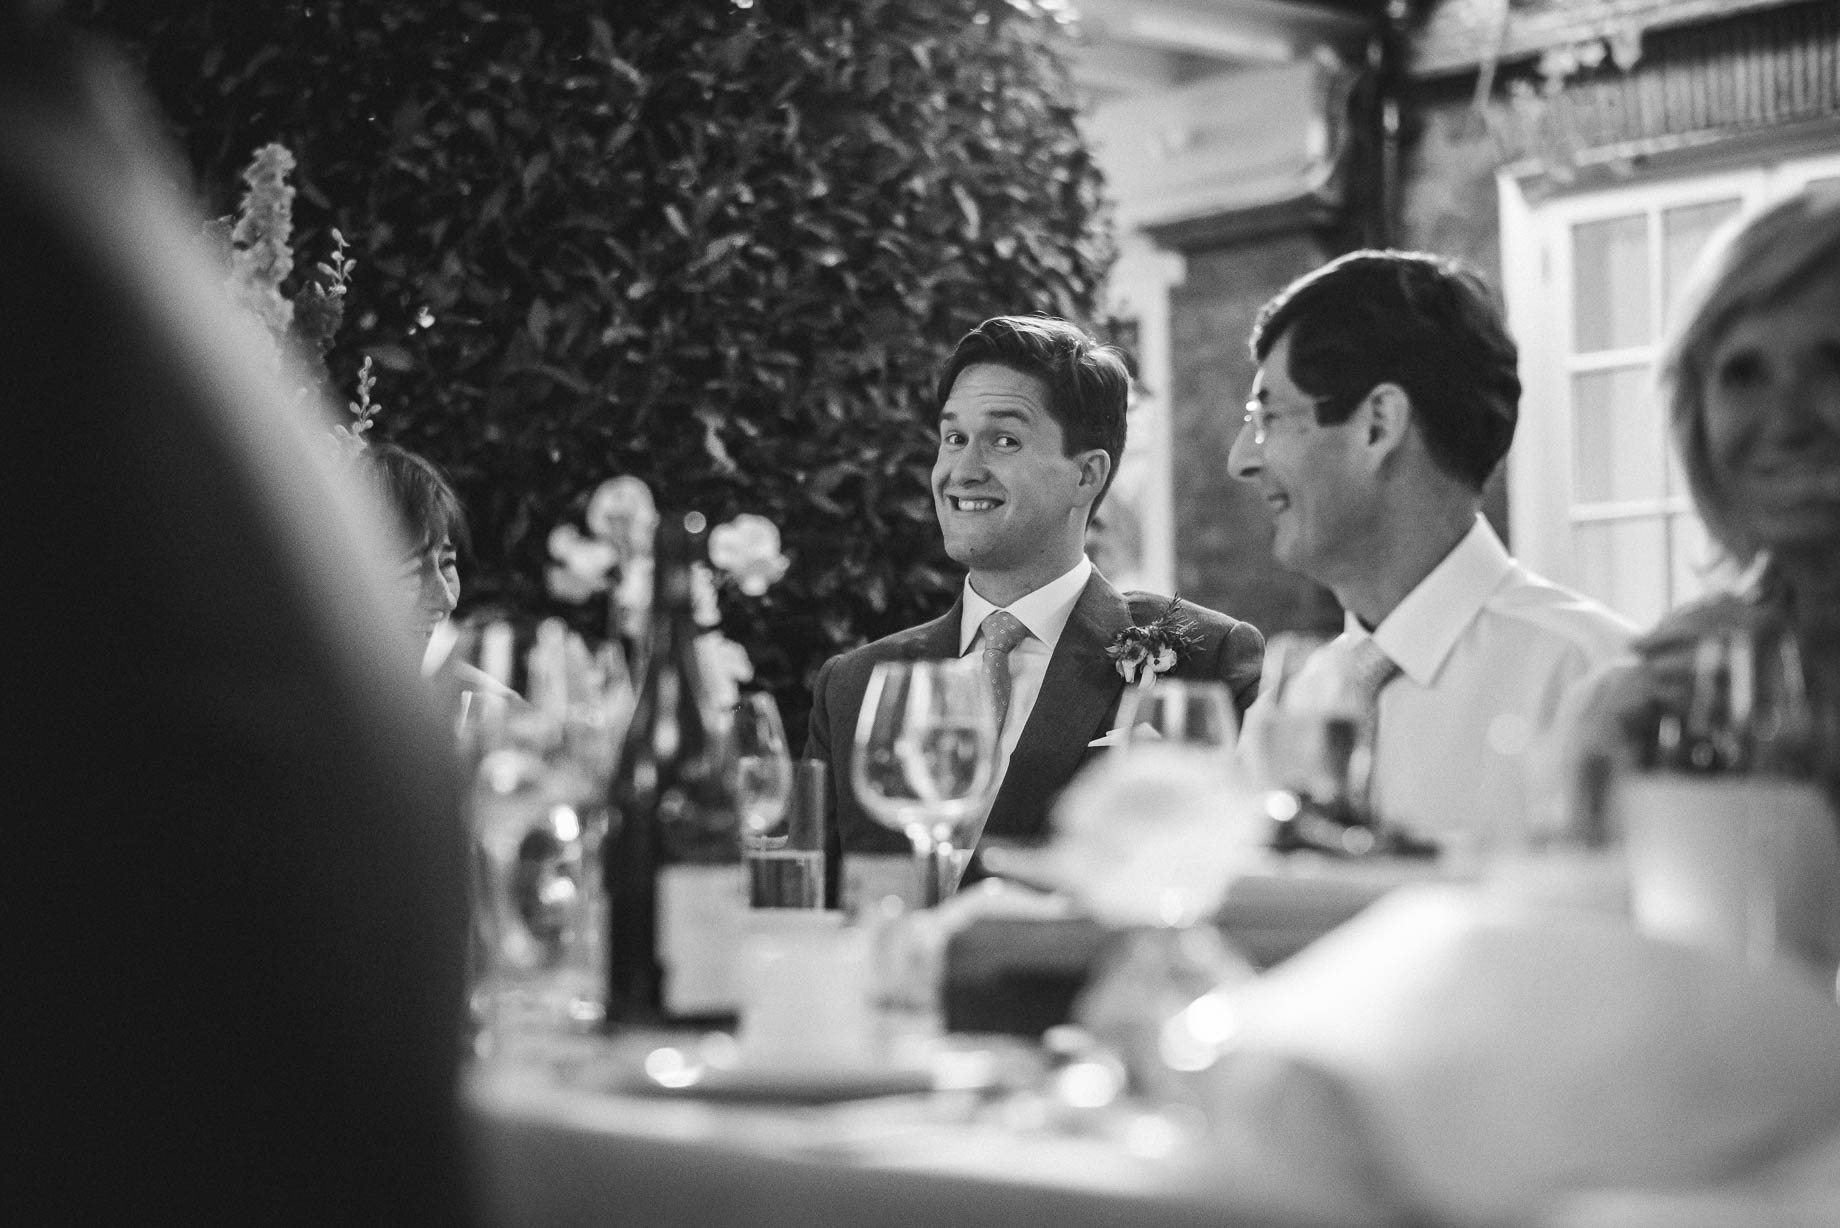 London wedding photography - Claire and JW - Guy Collier Photography (133 of 153)